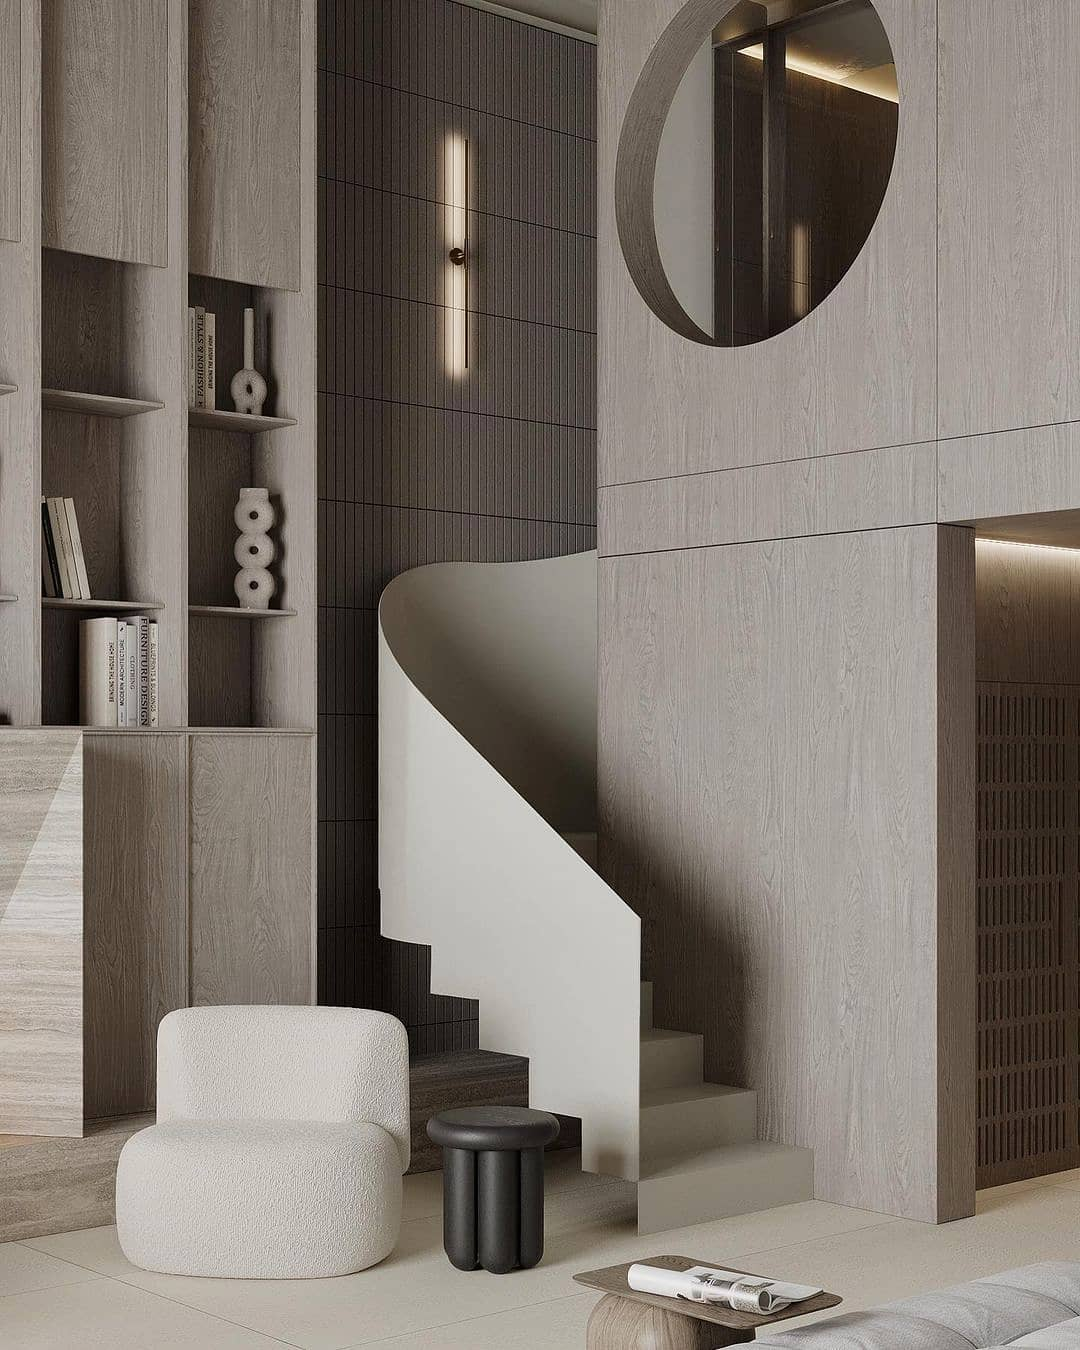 Soft pinkish gray postmodern futuristic interior room with minimal contemporary furniture, a thin steel stair design staircase and a round window gap at the upper half level